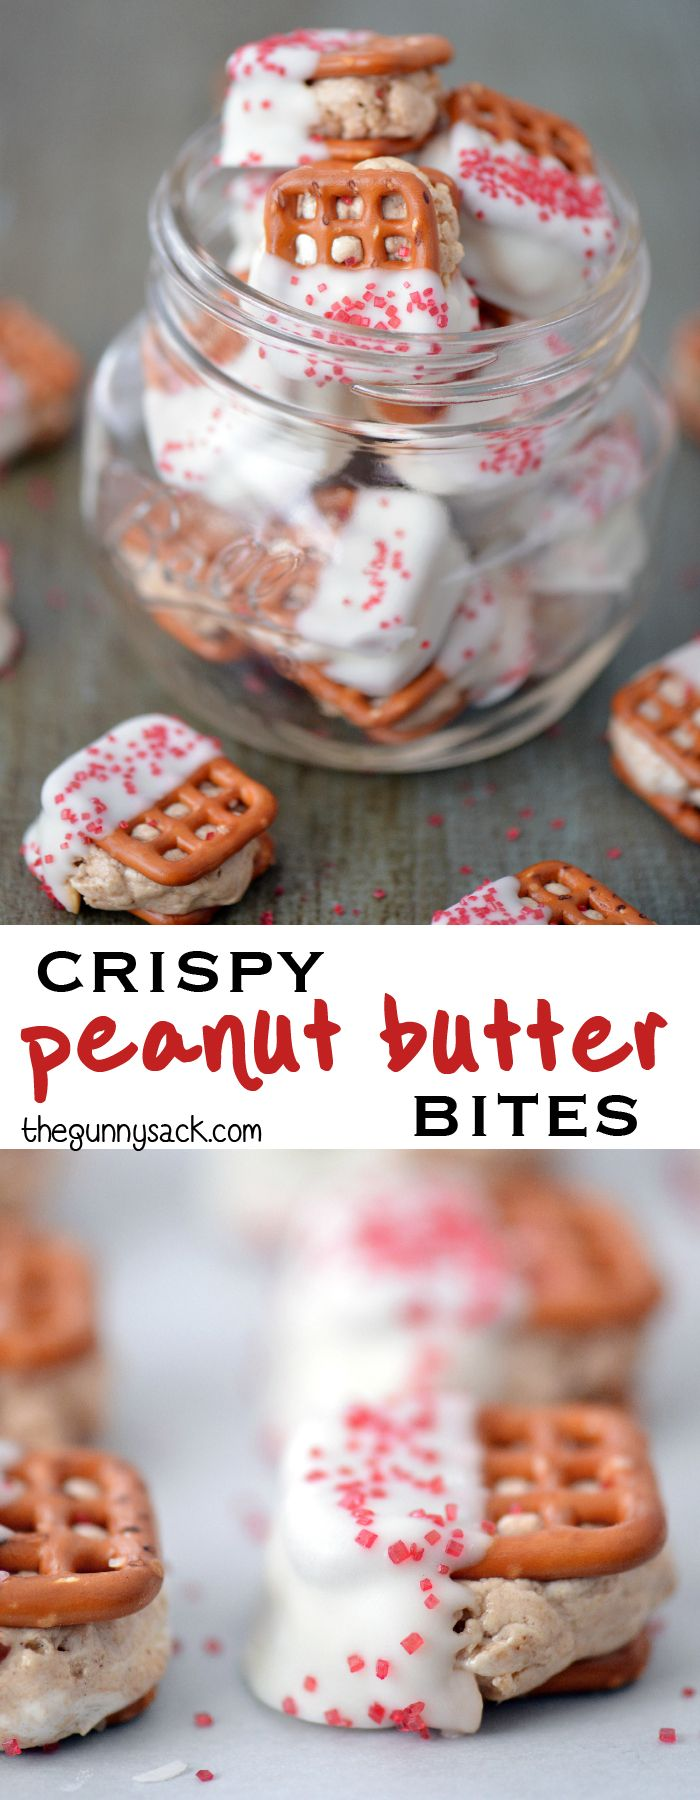 Crispy Peanut Butter Bites are so much easier to make than peanut butter balls or truffles. In this recipe, sandwich dough between pretzels and dip half in white chocolate!